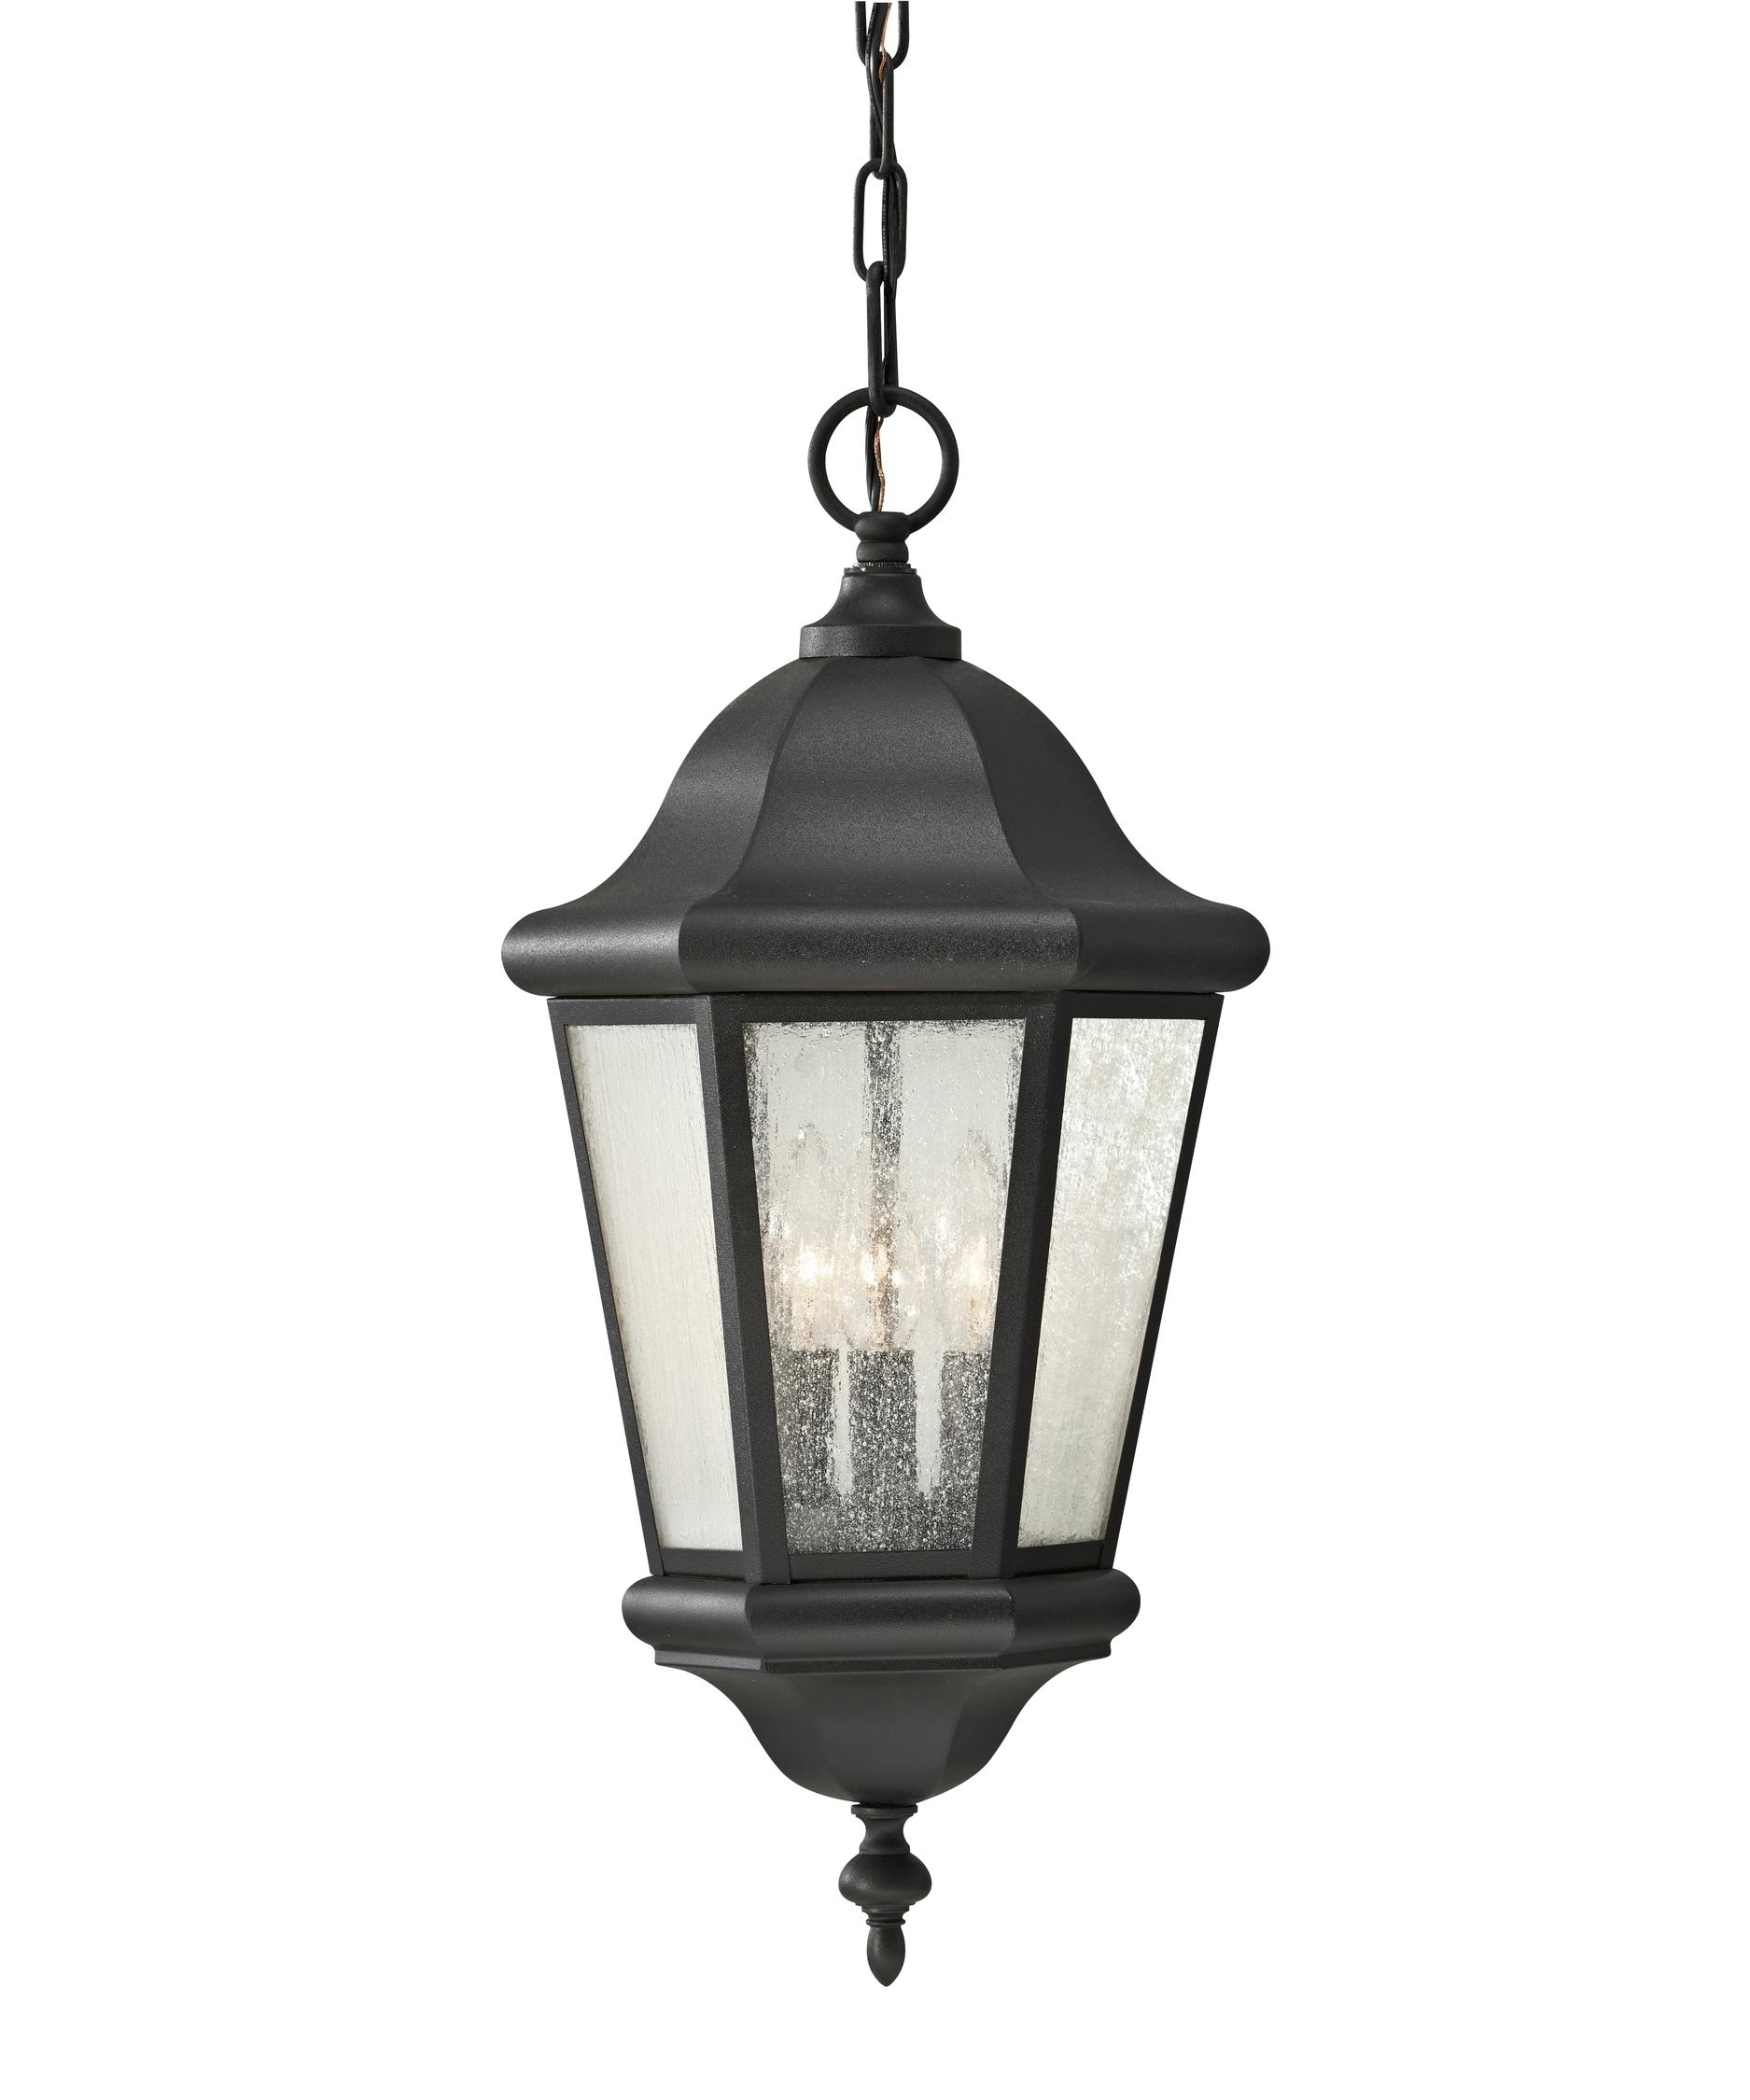 Murray Feiss Ol5911 Martinsville 10 Inch Wide 3 Light Outdoor In Outdoor Hanging Light In Black (#8 of 15)